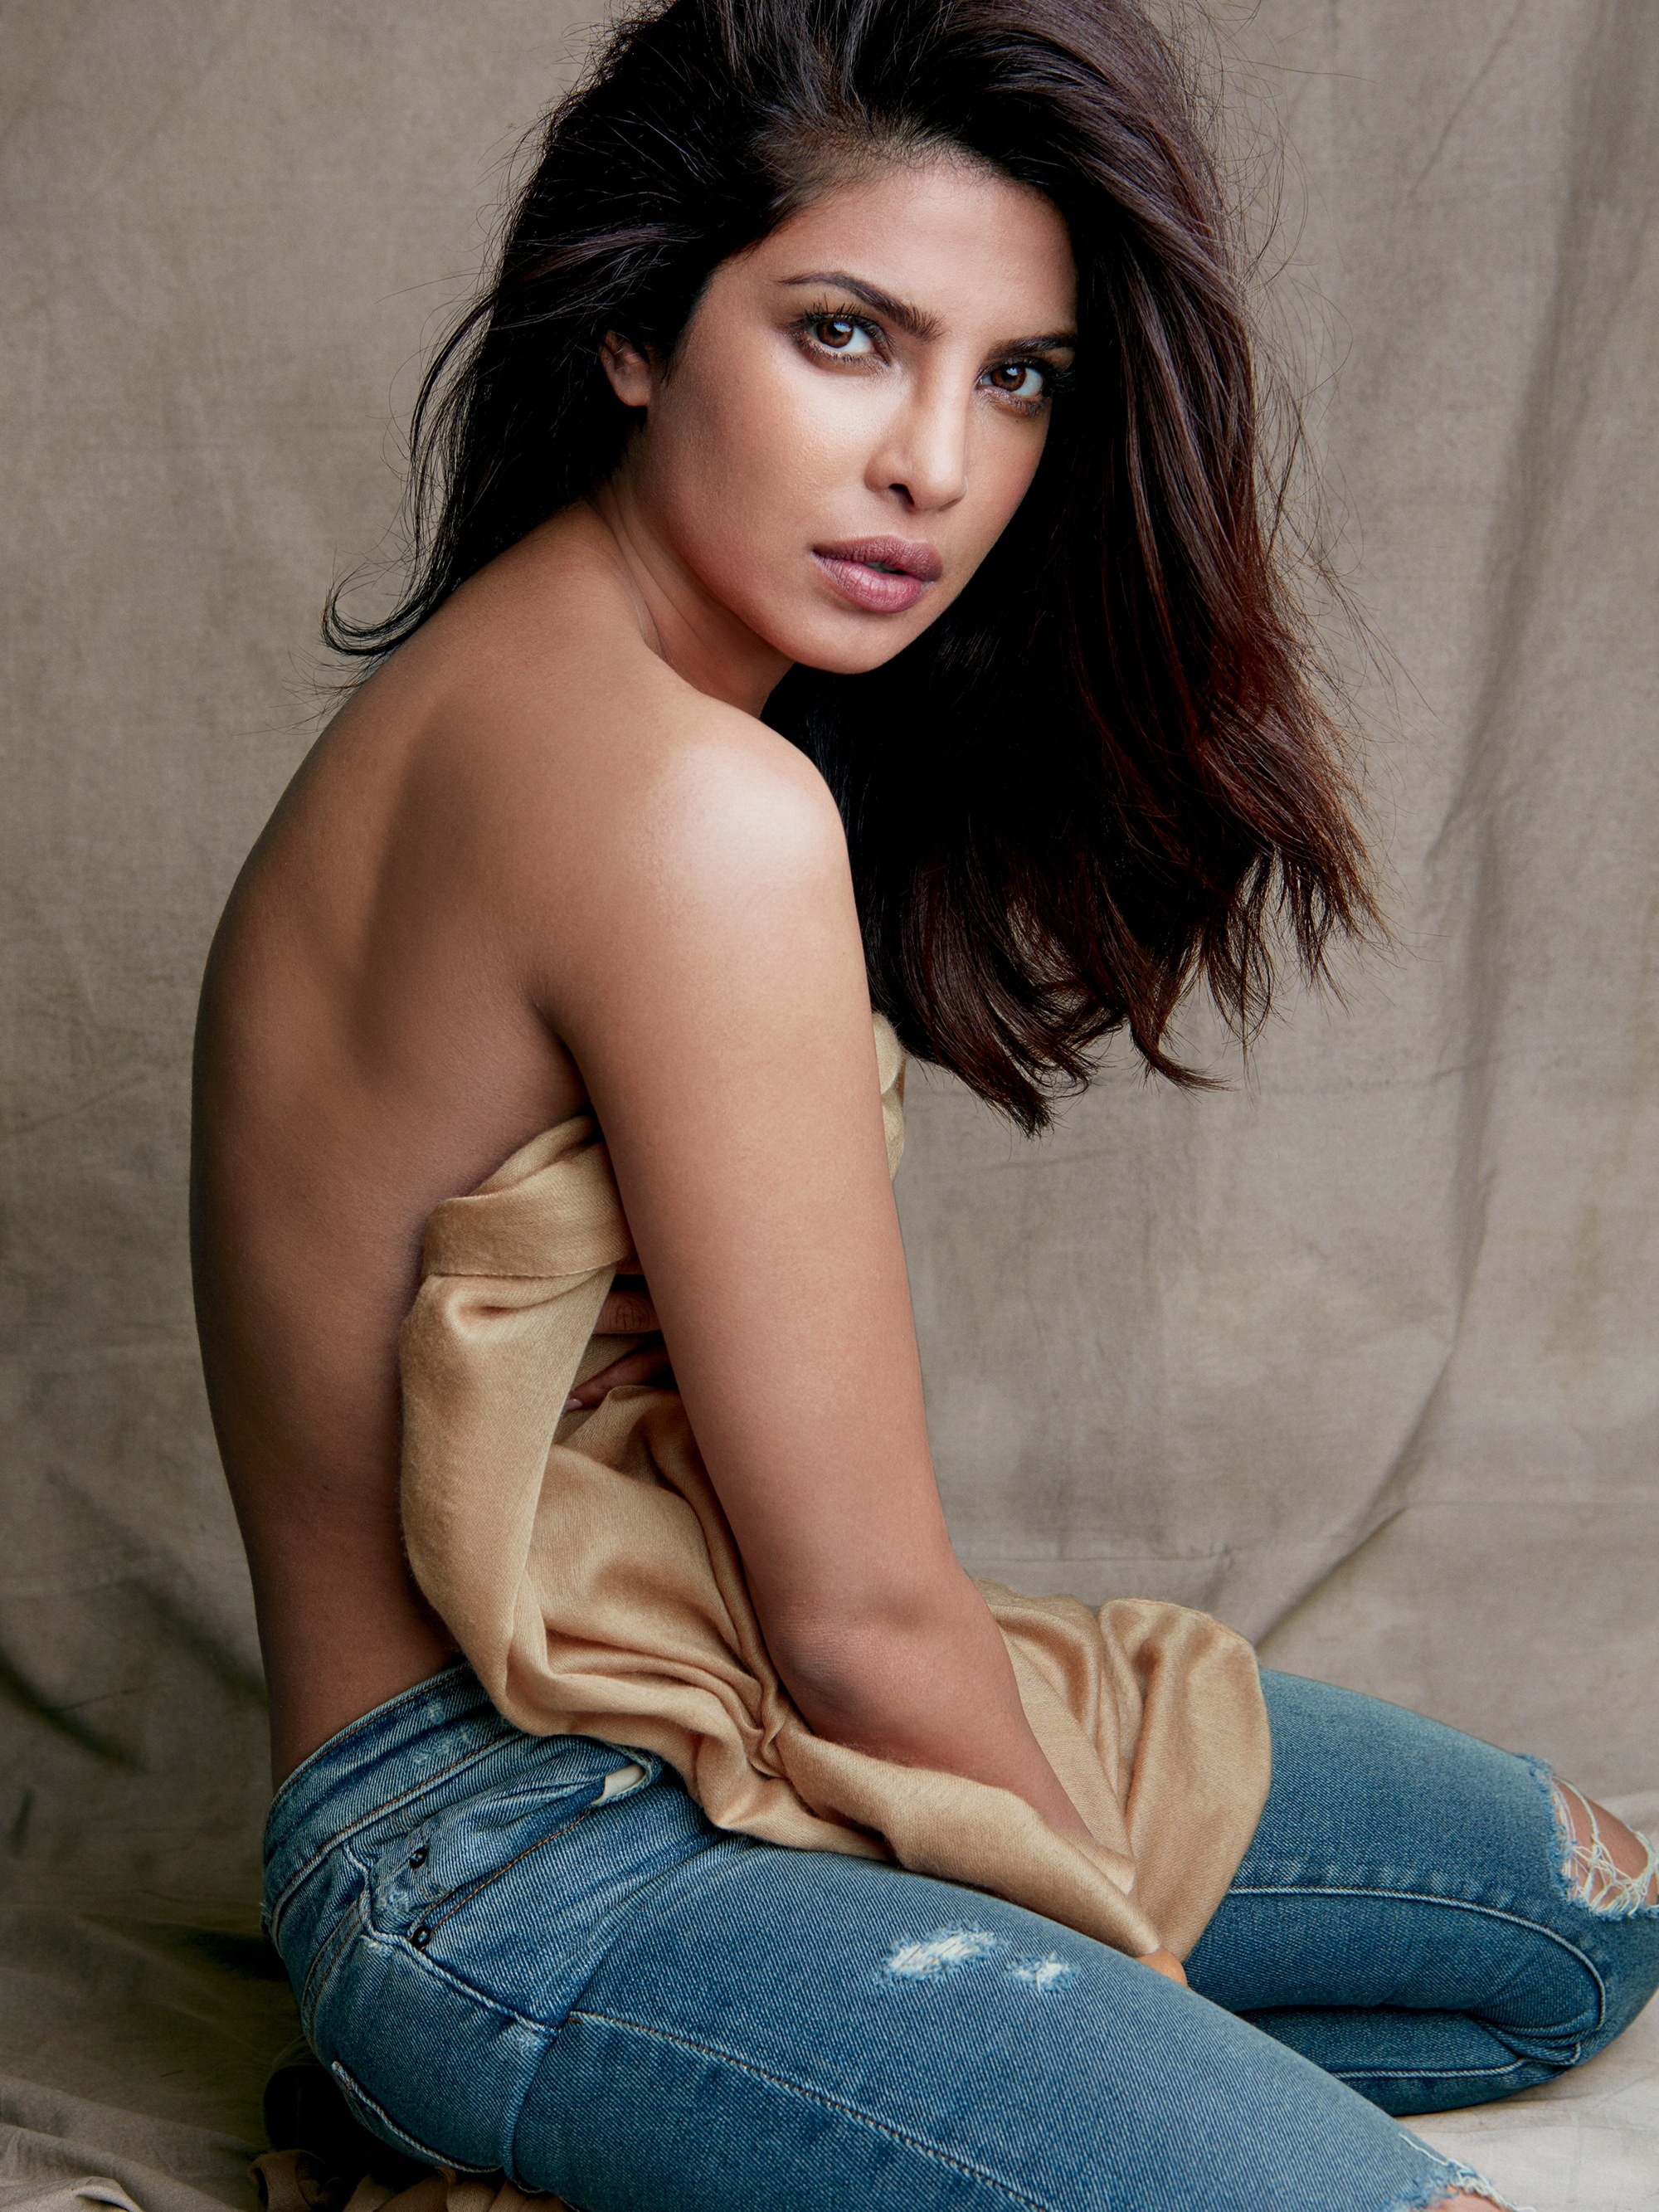 Priyanka Chopra 11+ Sizzling Bikini Swimsuit Photos Wiki ...